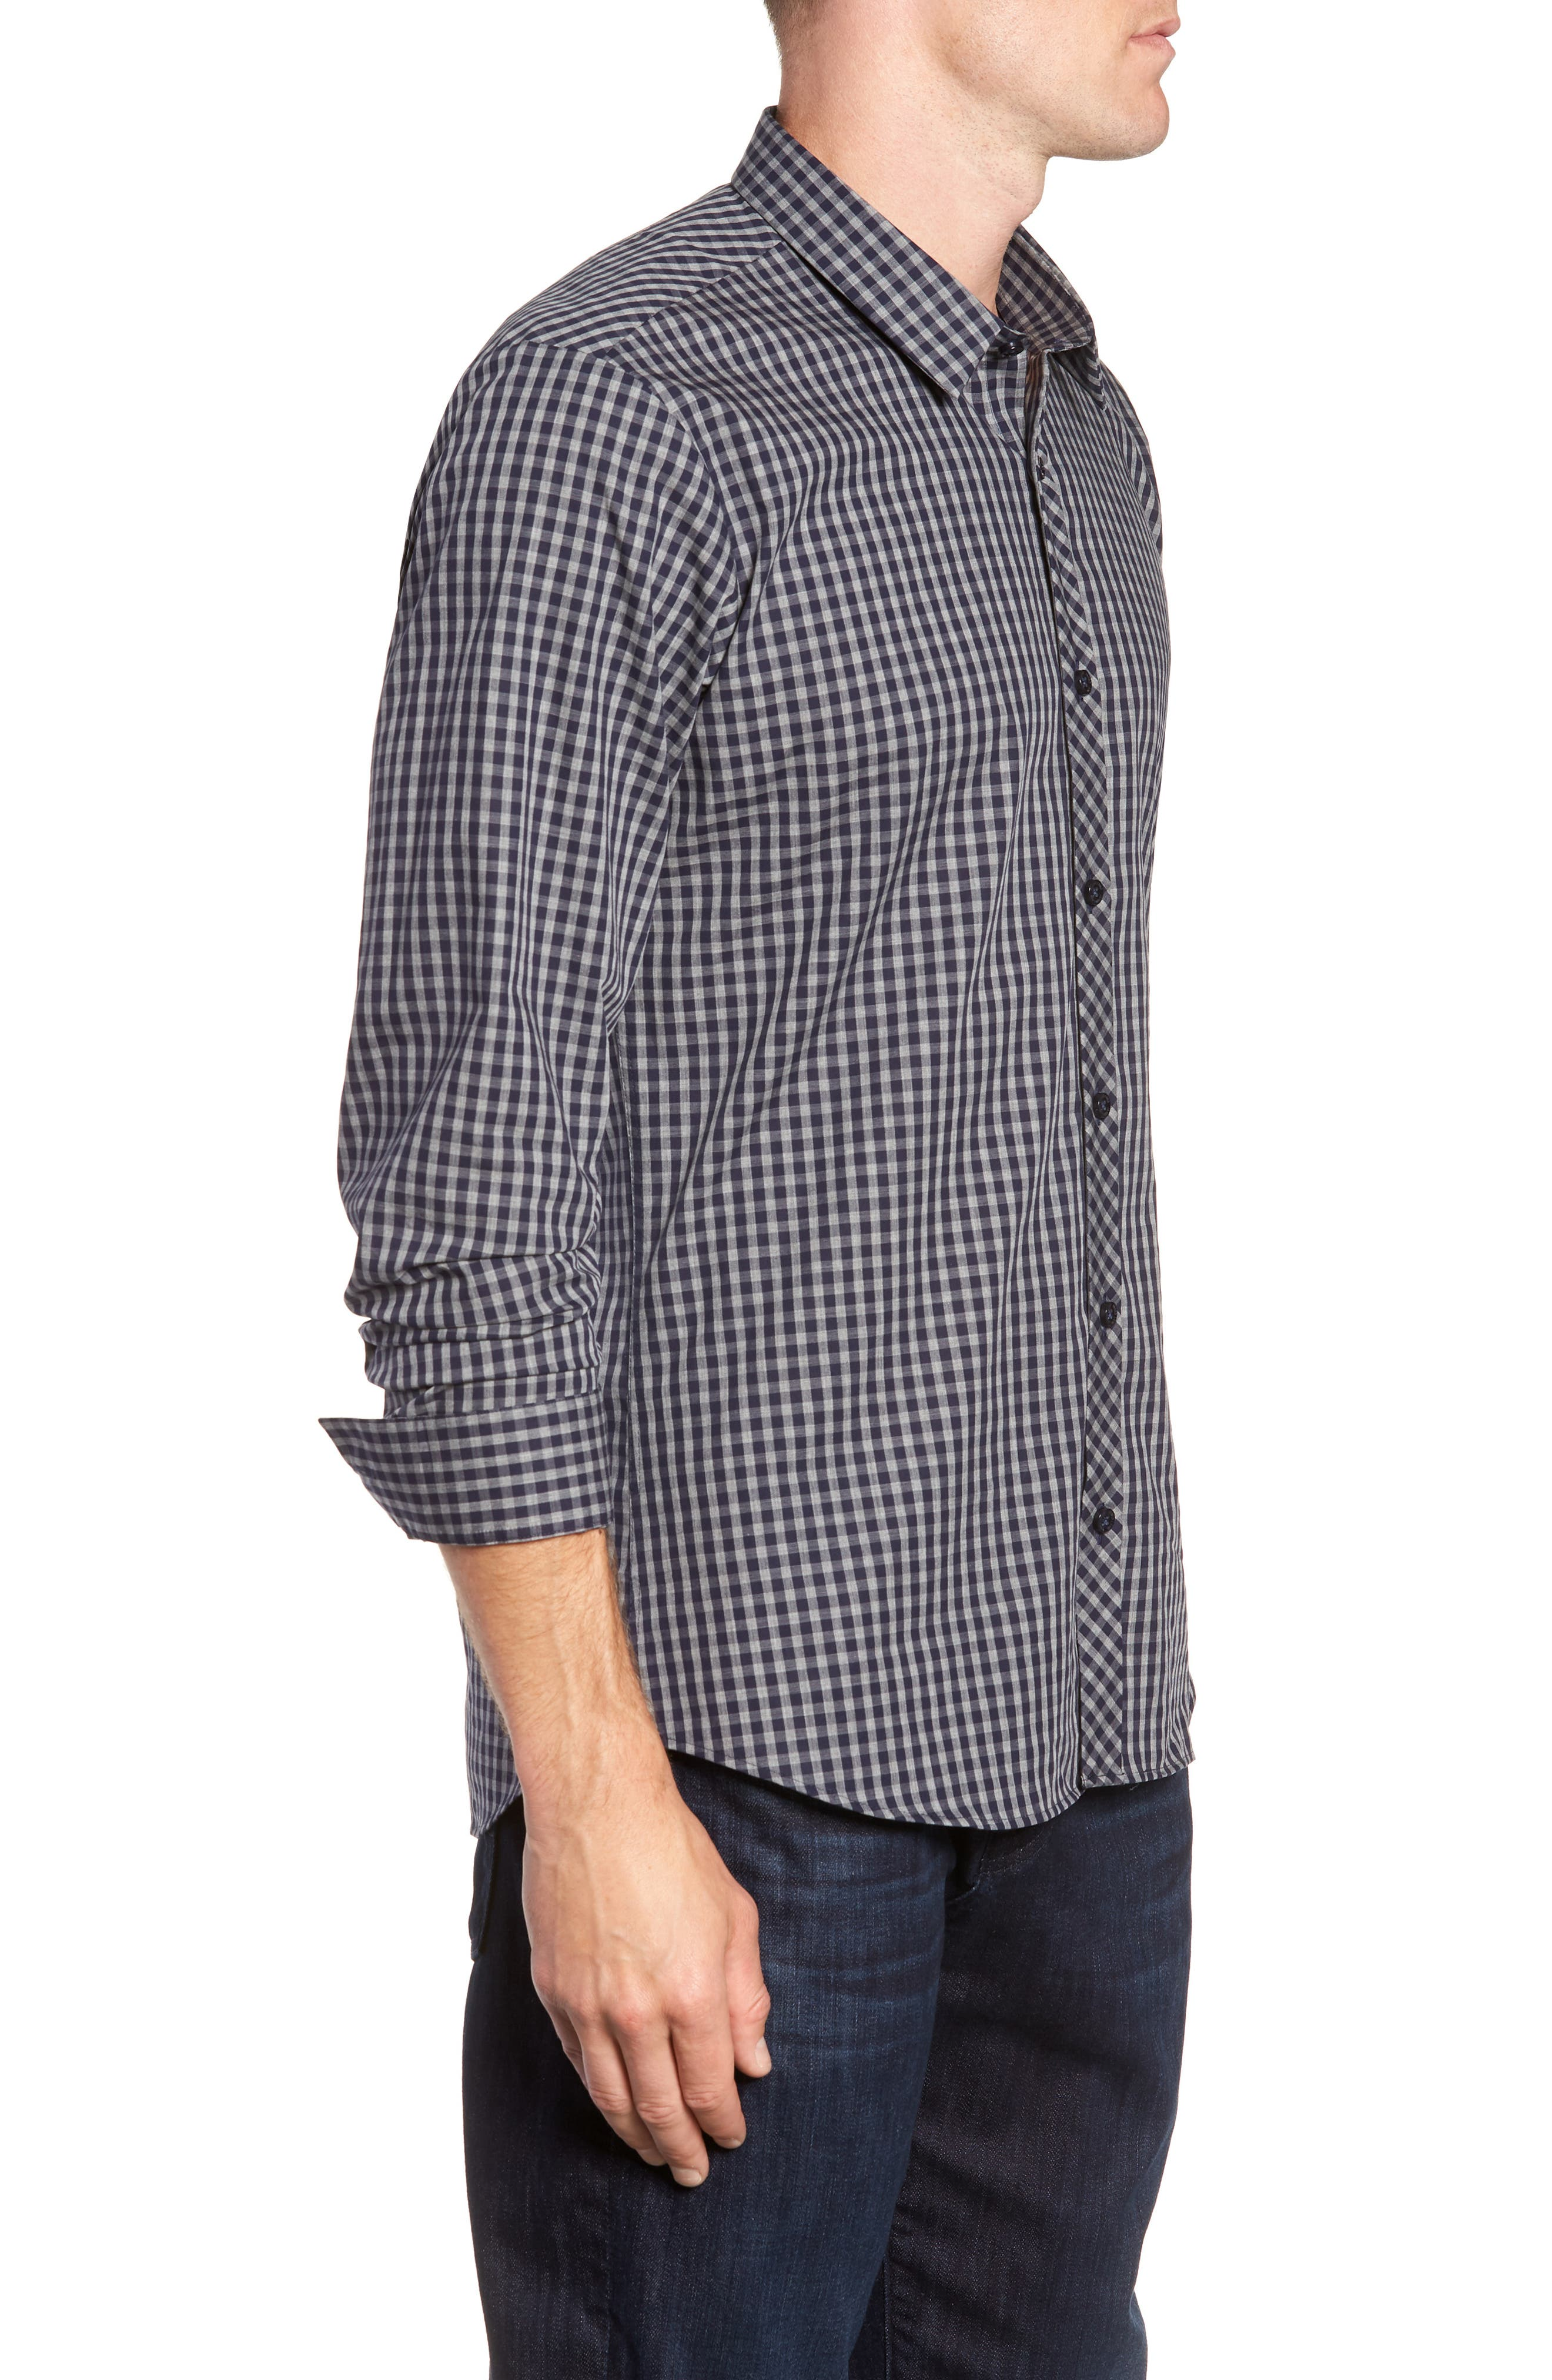 Trim Fit Sport Shirt,                             Alternate thumbnail 4, color,                             Navy Grey Check